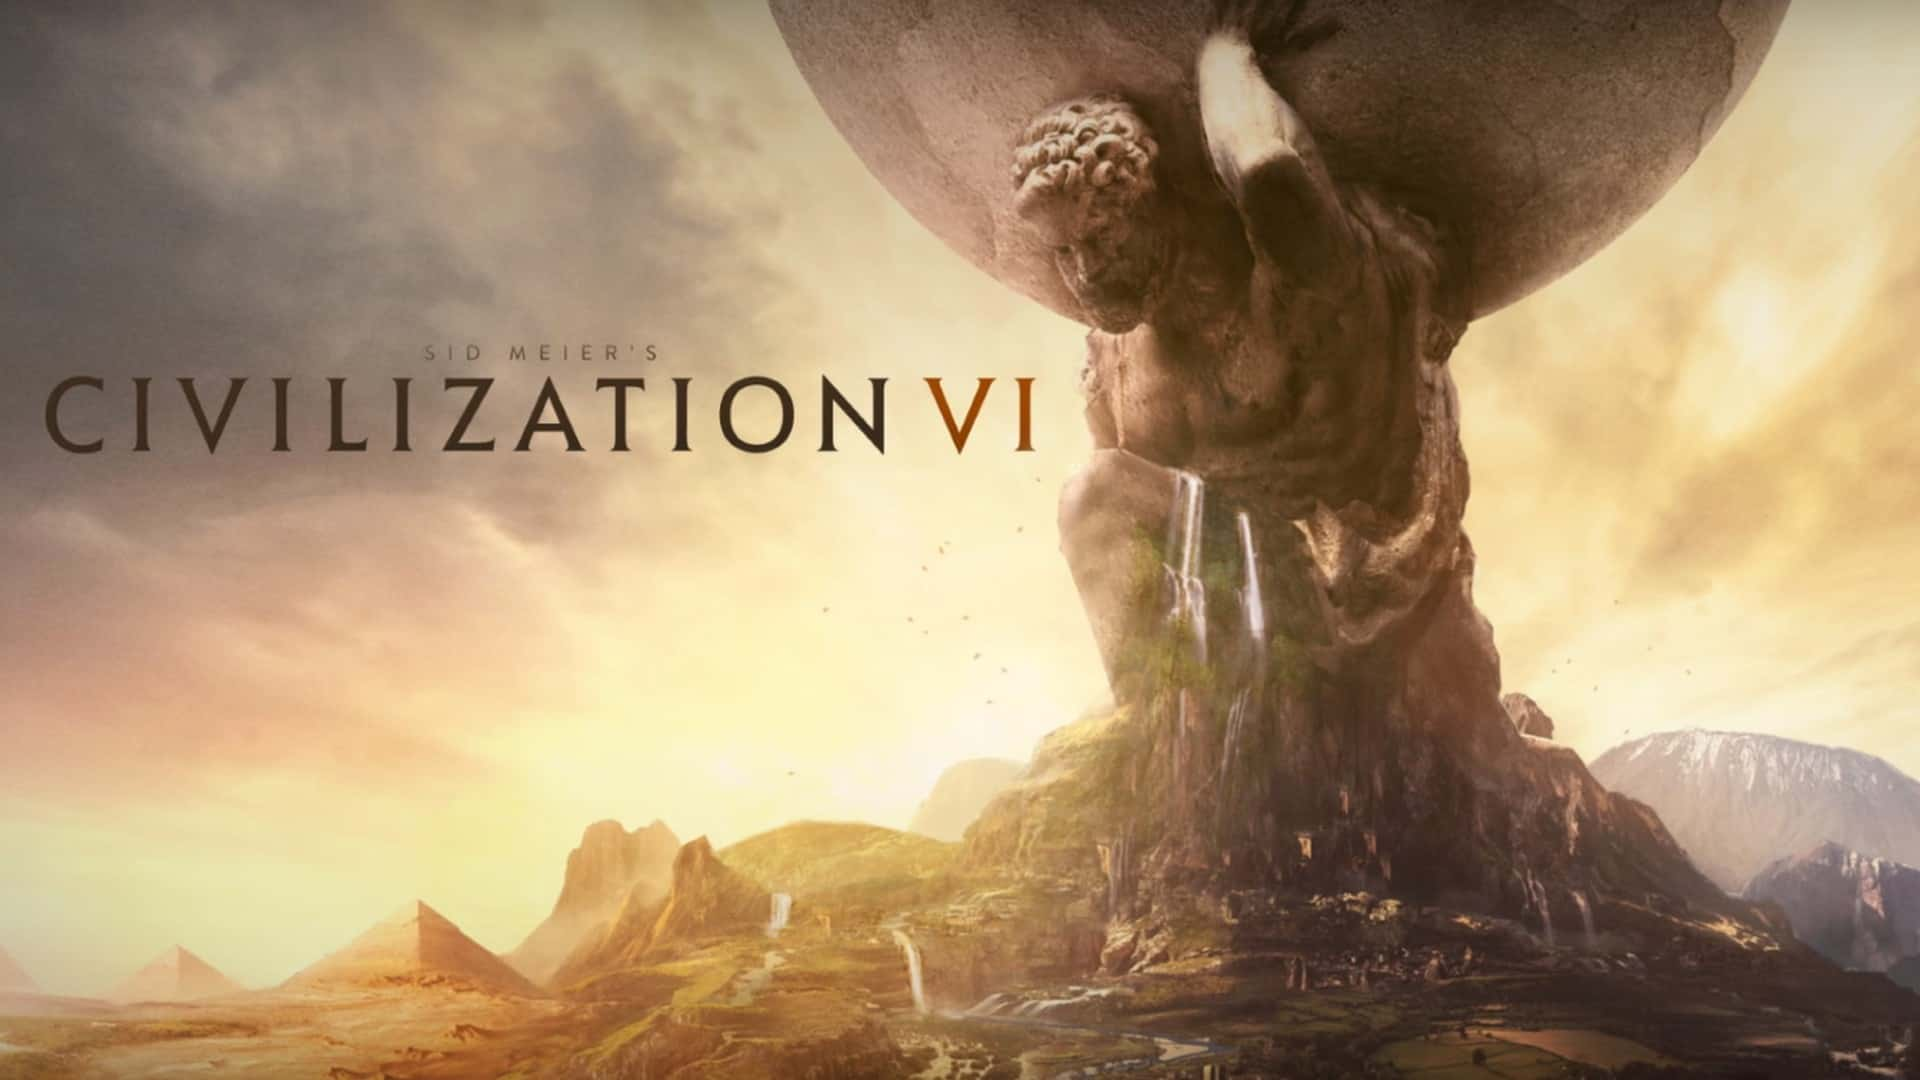 Civilization VI – Coming to Xbox One & PlayStation 4 in November